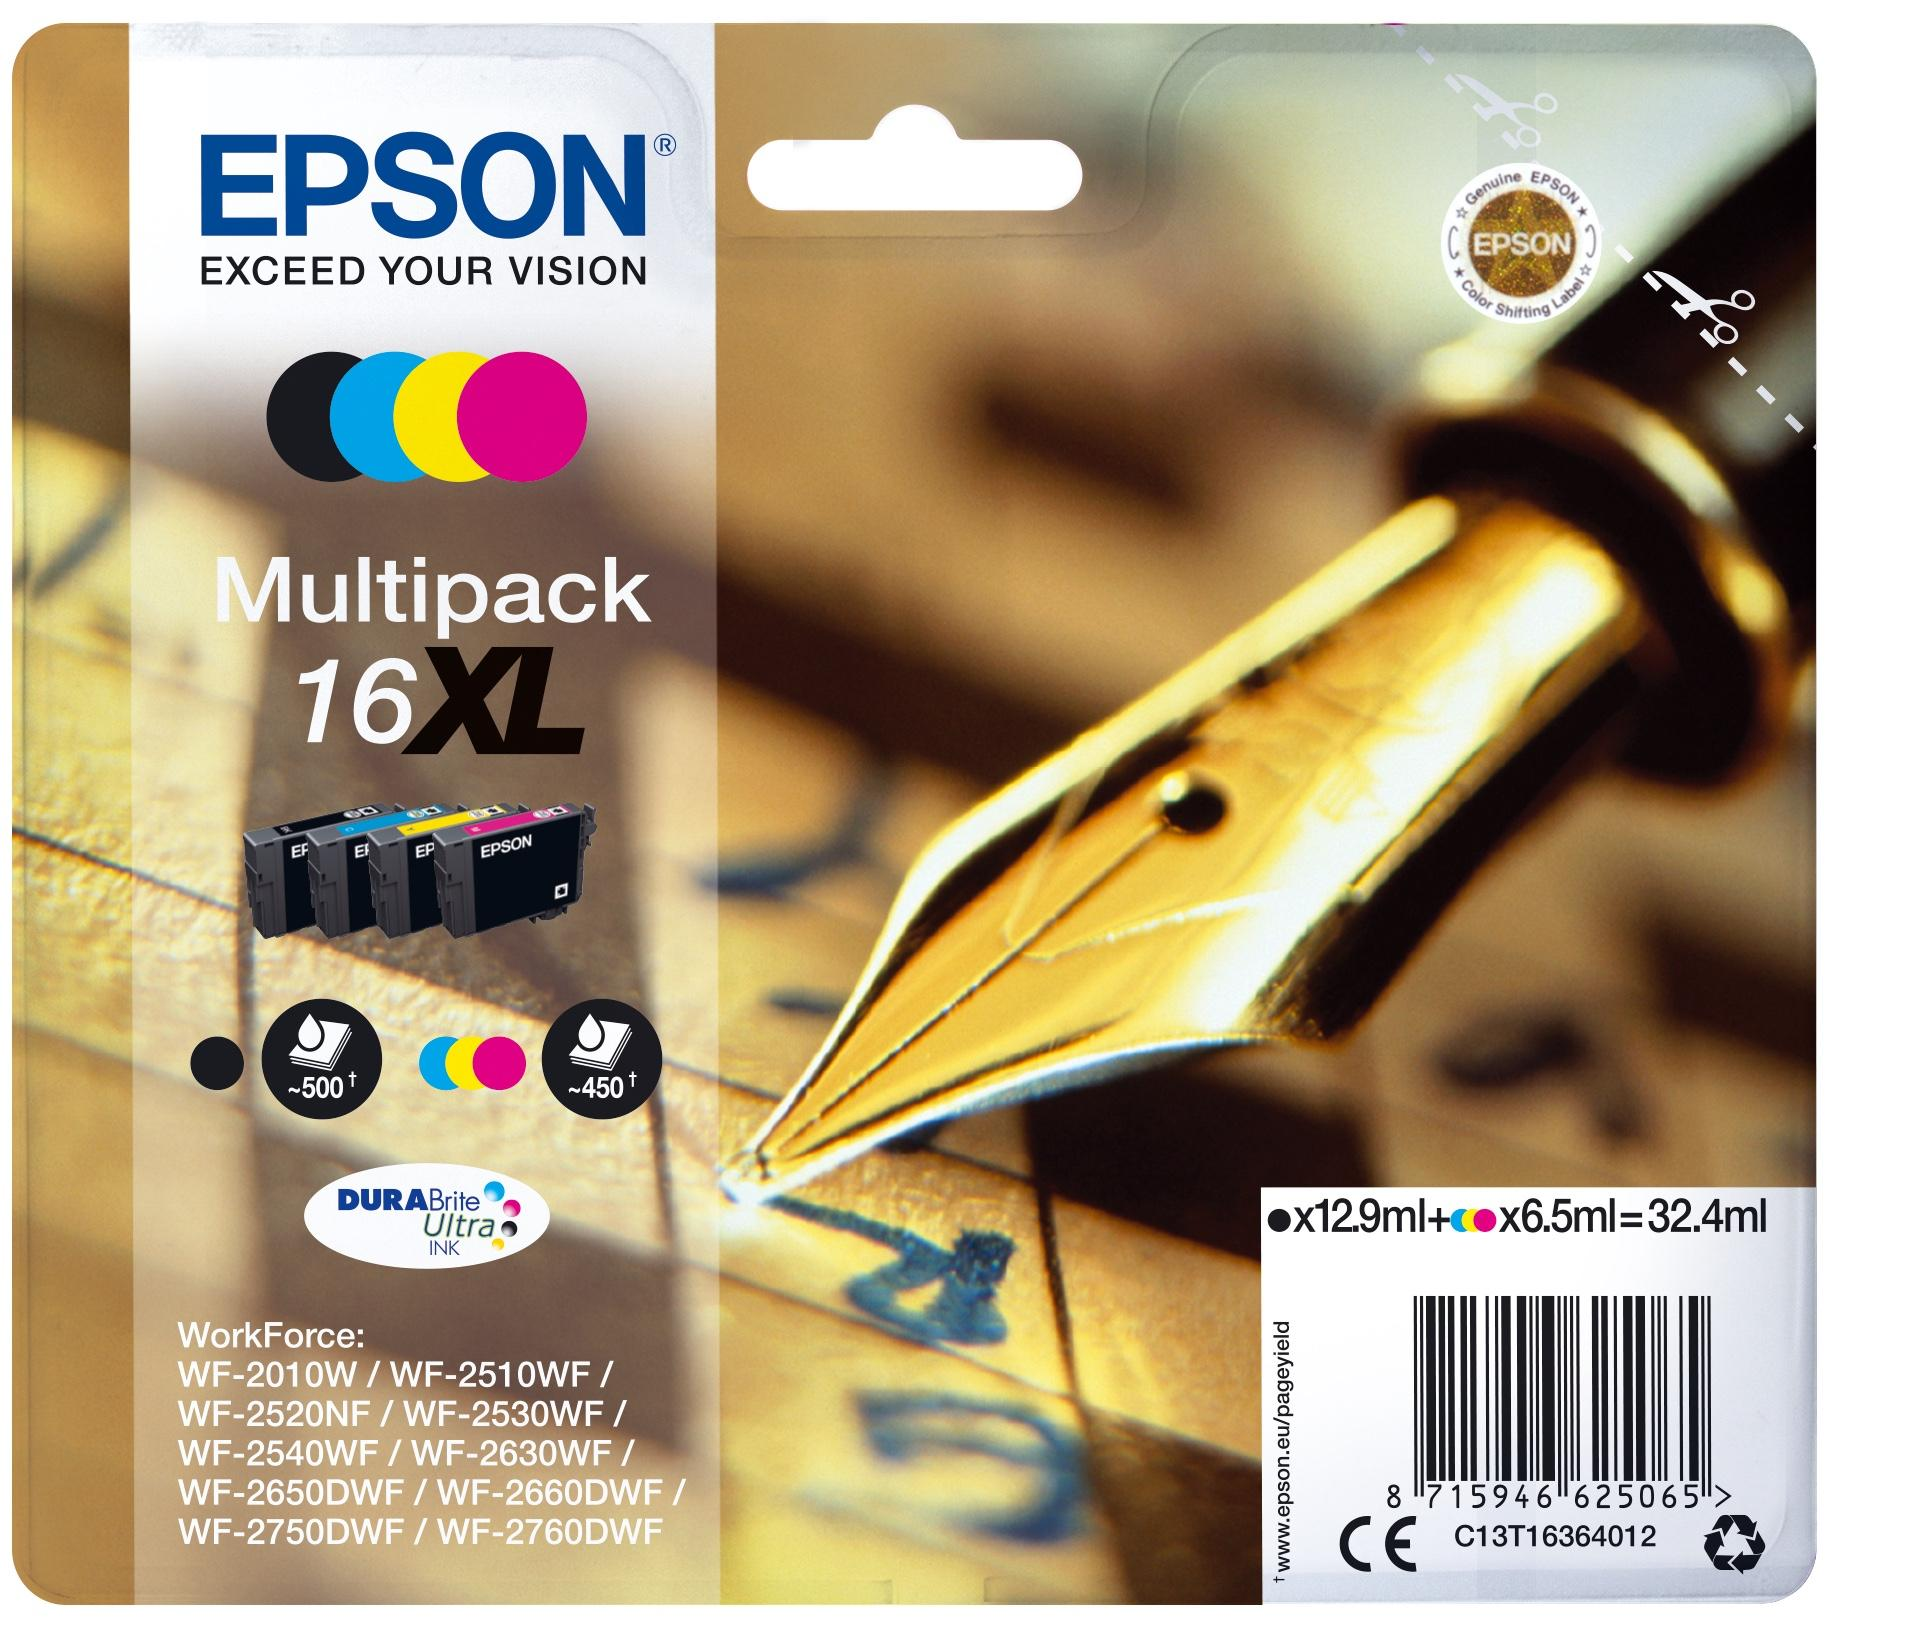 Epson Pen and crossword Multipack Penna e cruciverba 4 colori Inchiostri DURABrite Ultra 16XL